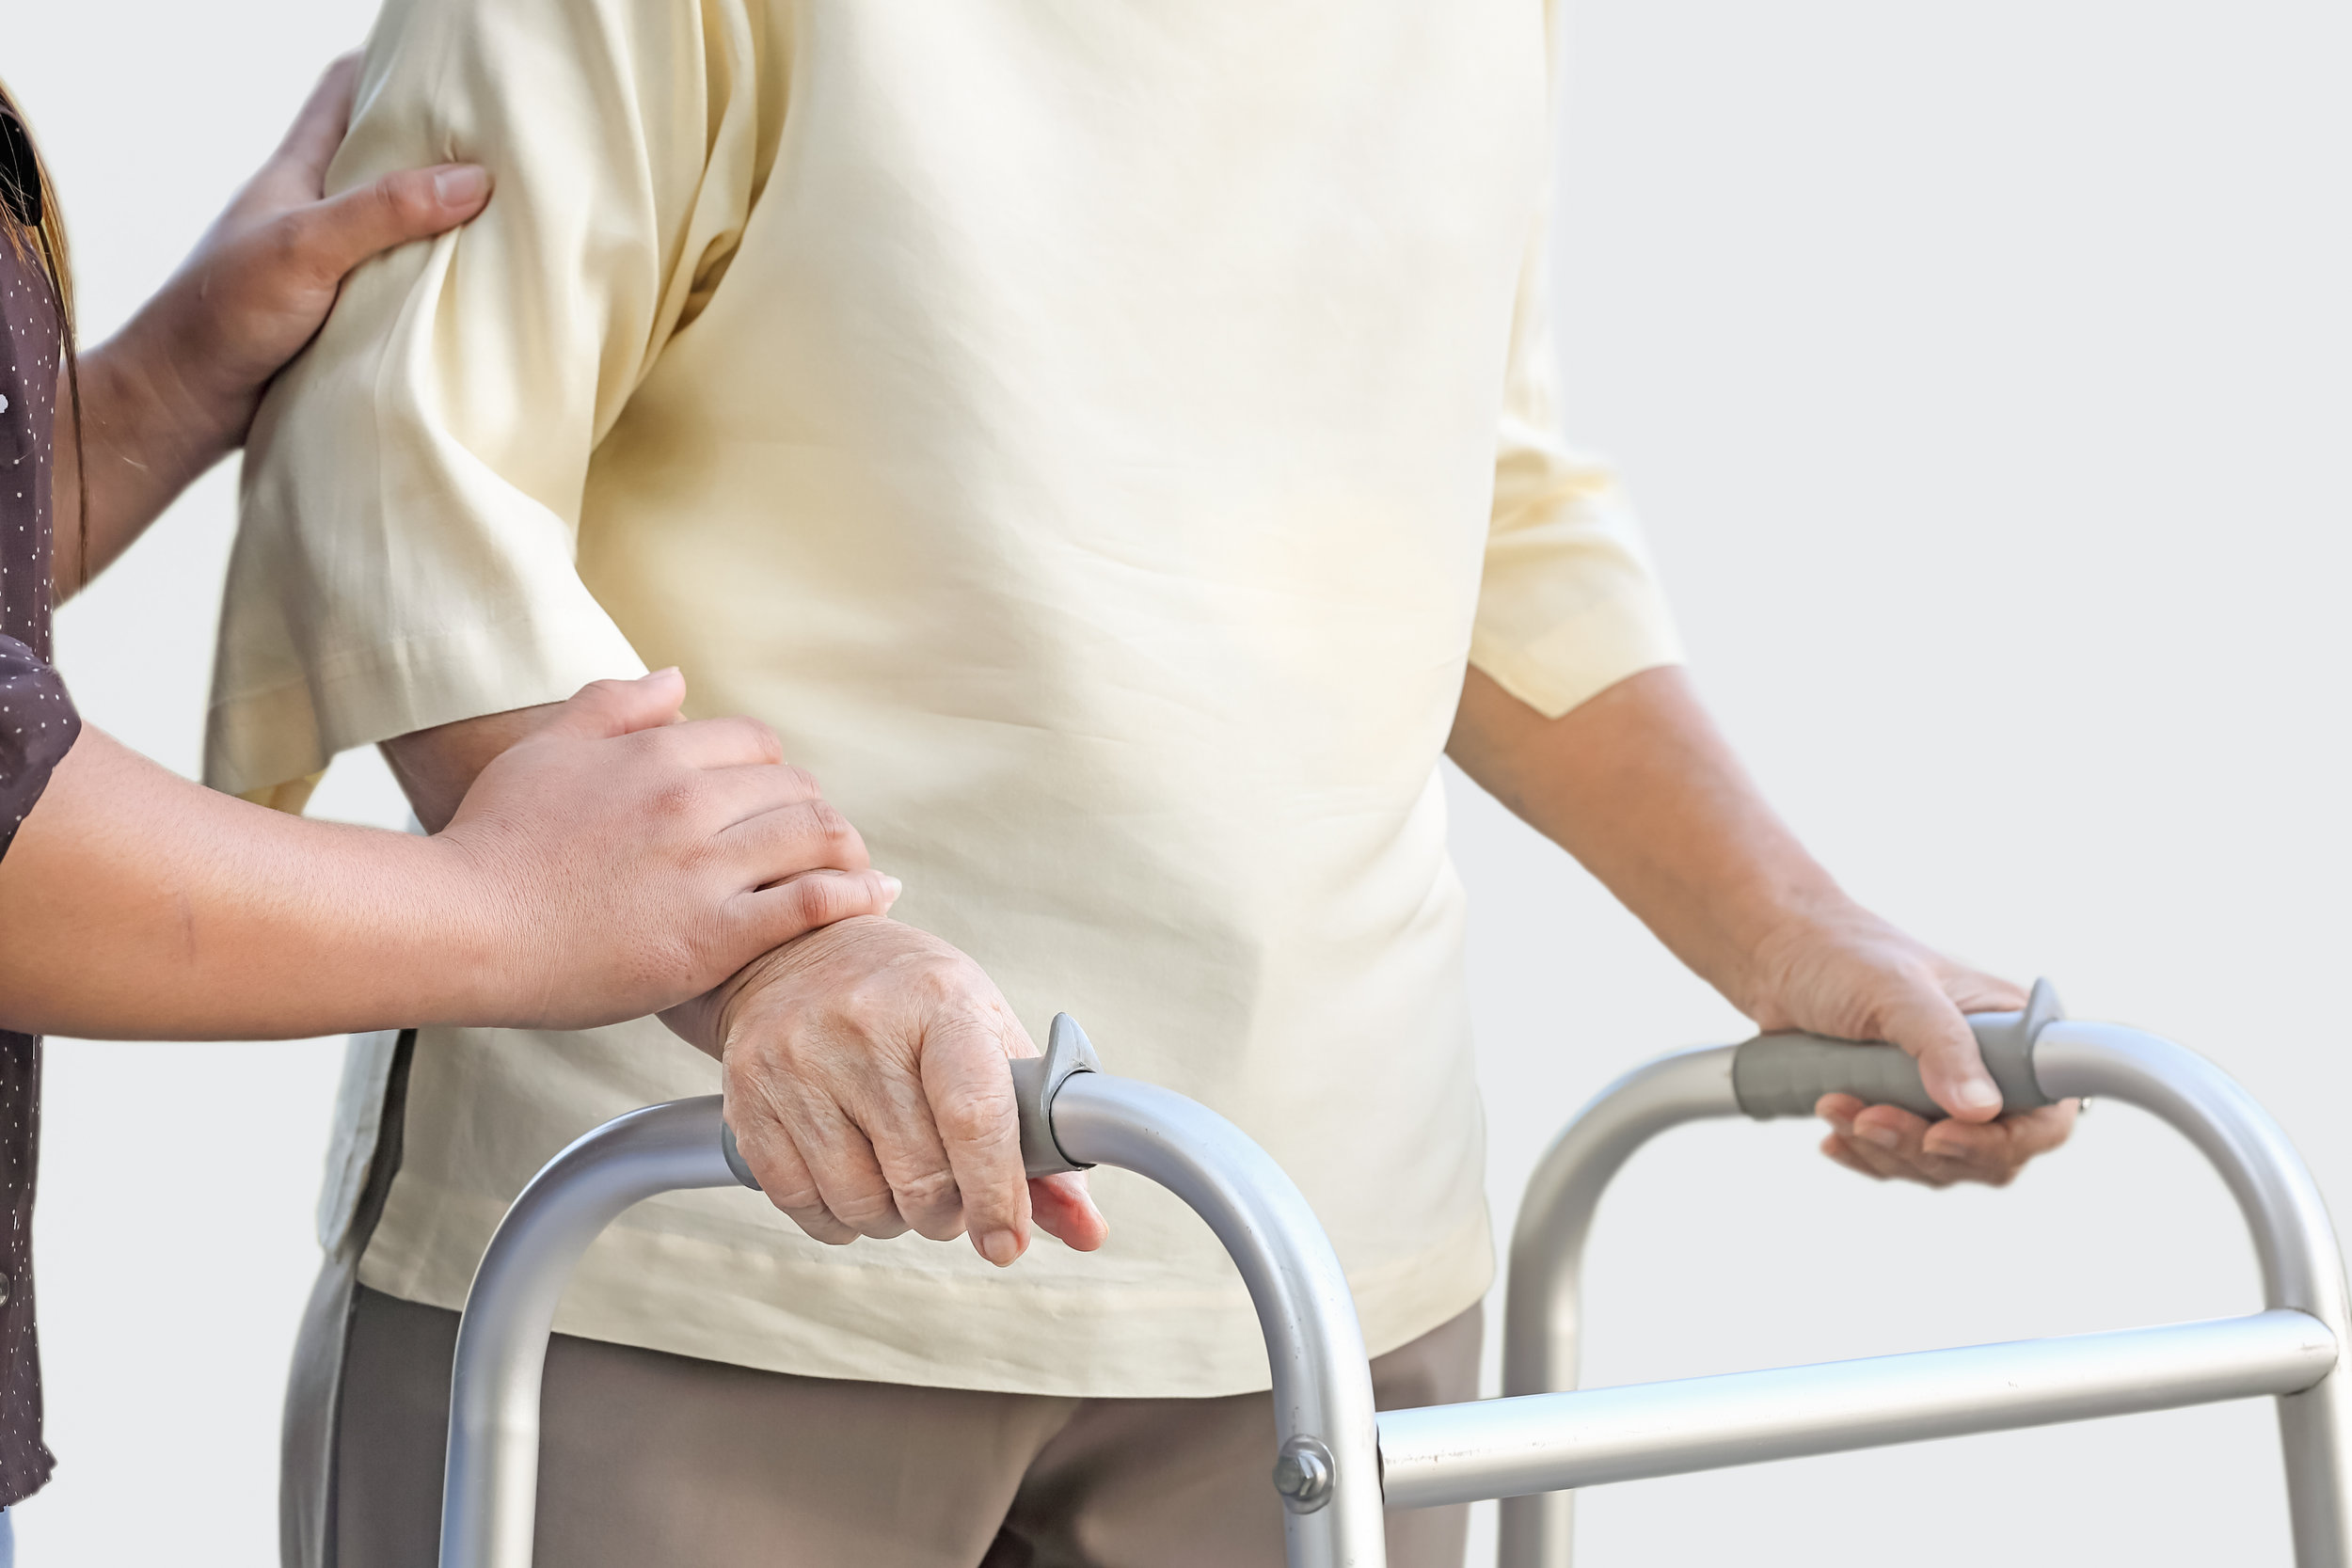 We will help you fall-proof the house and adapt it for aging, as well as identify equipment needs and other solutions to prevent falls and avoid injuries.